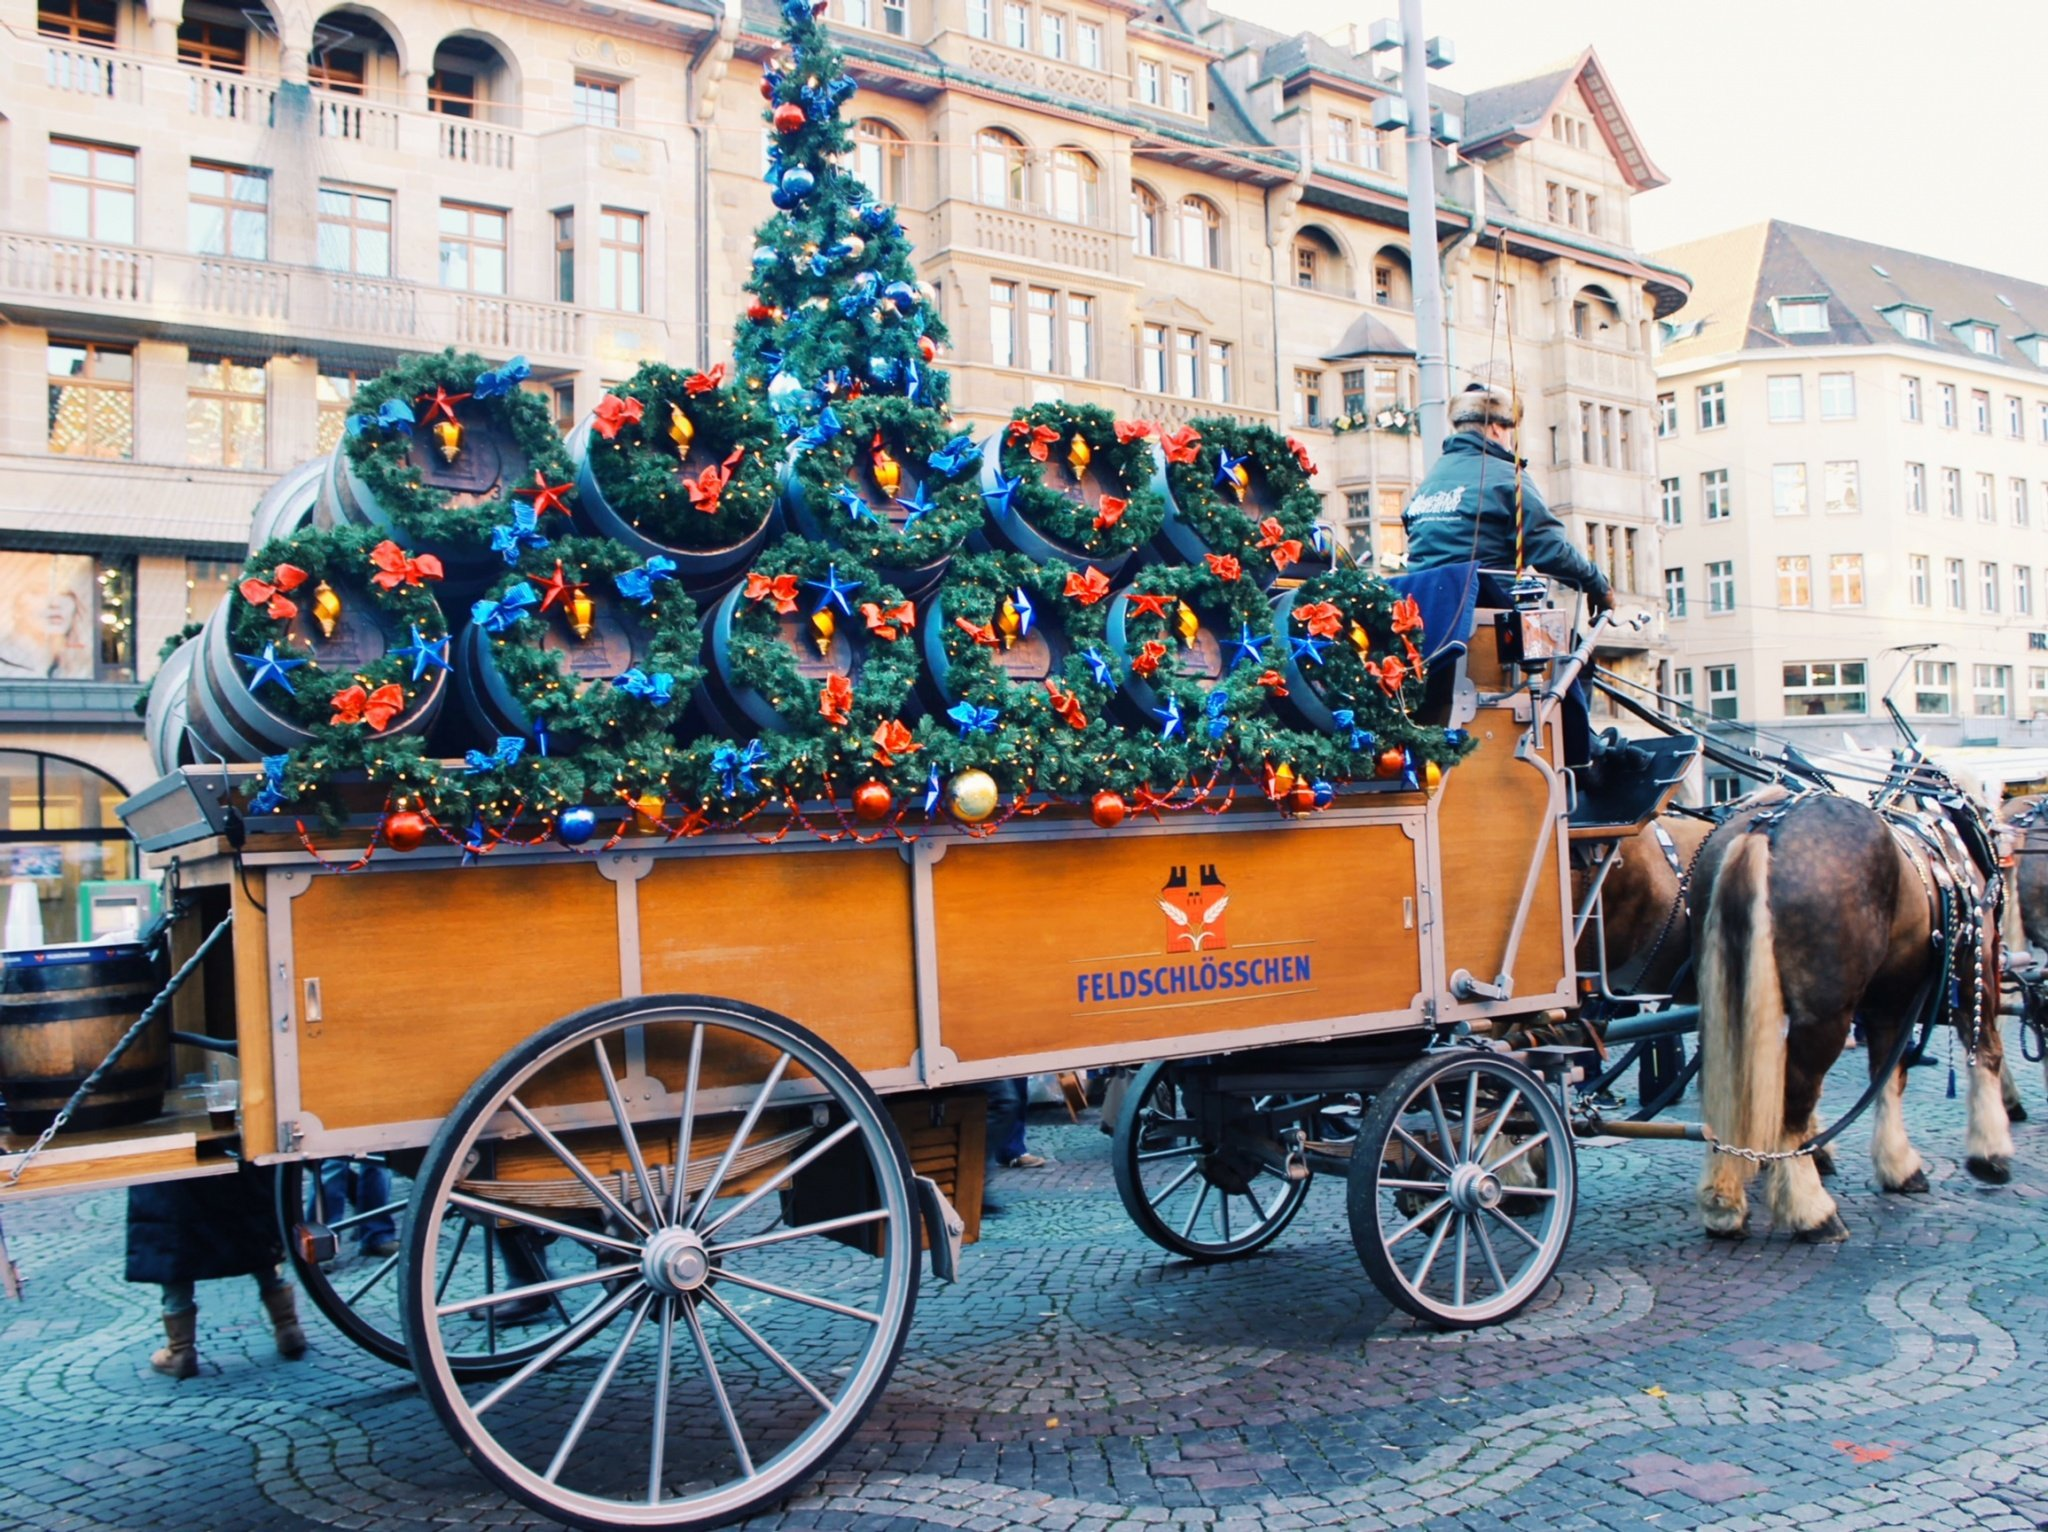 Nothing gets us all into the festive spirit better than Christmas markets. My top 3 cities for a fairytale #Christmas in #Switzerland/ #lucerne #basel #zurich #winter #travel #destination #swiss #cities #markets